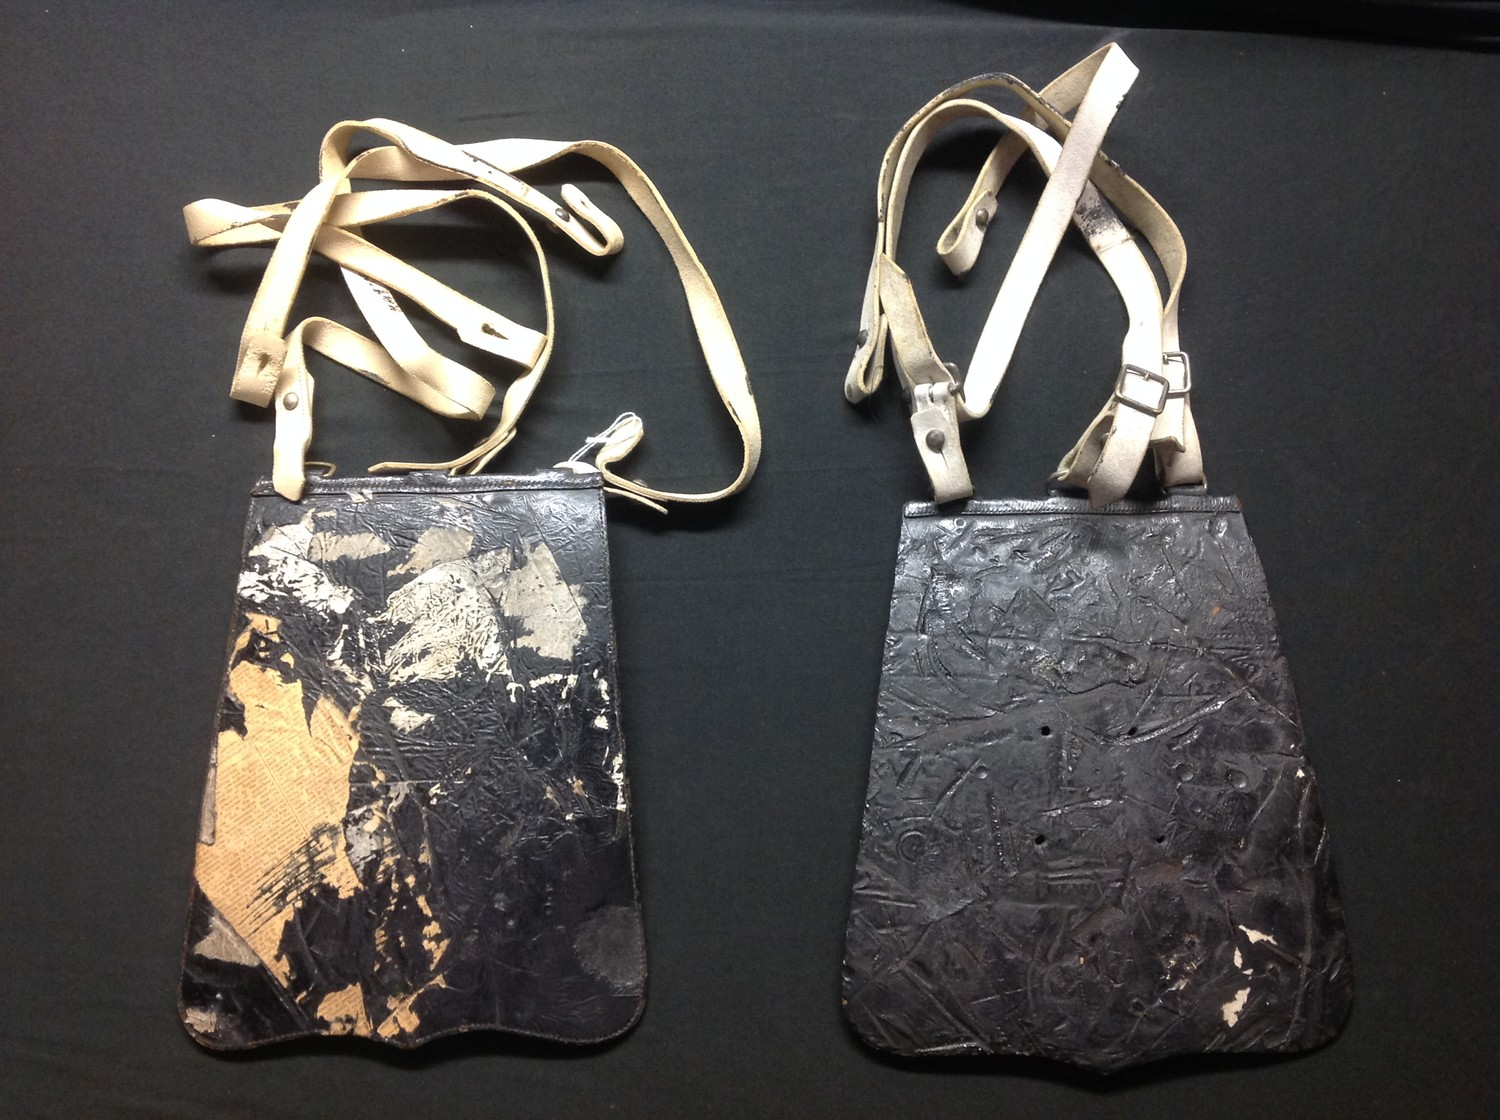 Pair of Victorian Cavalry Officers Sabretashes. Both have three white leather straps attatched. No